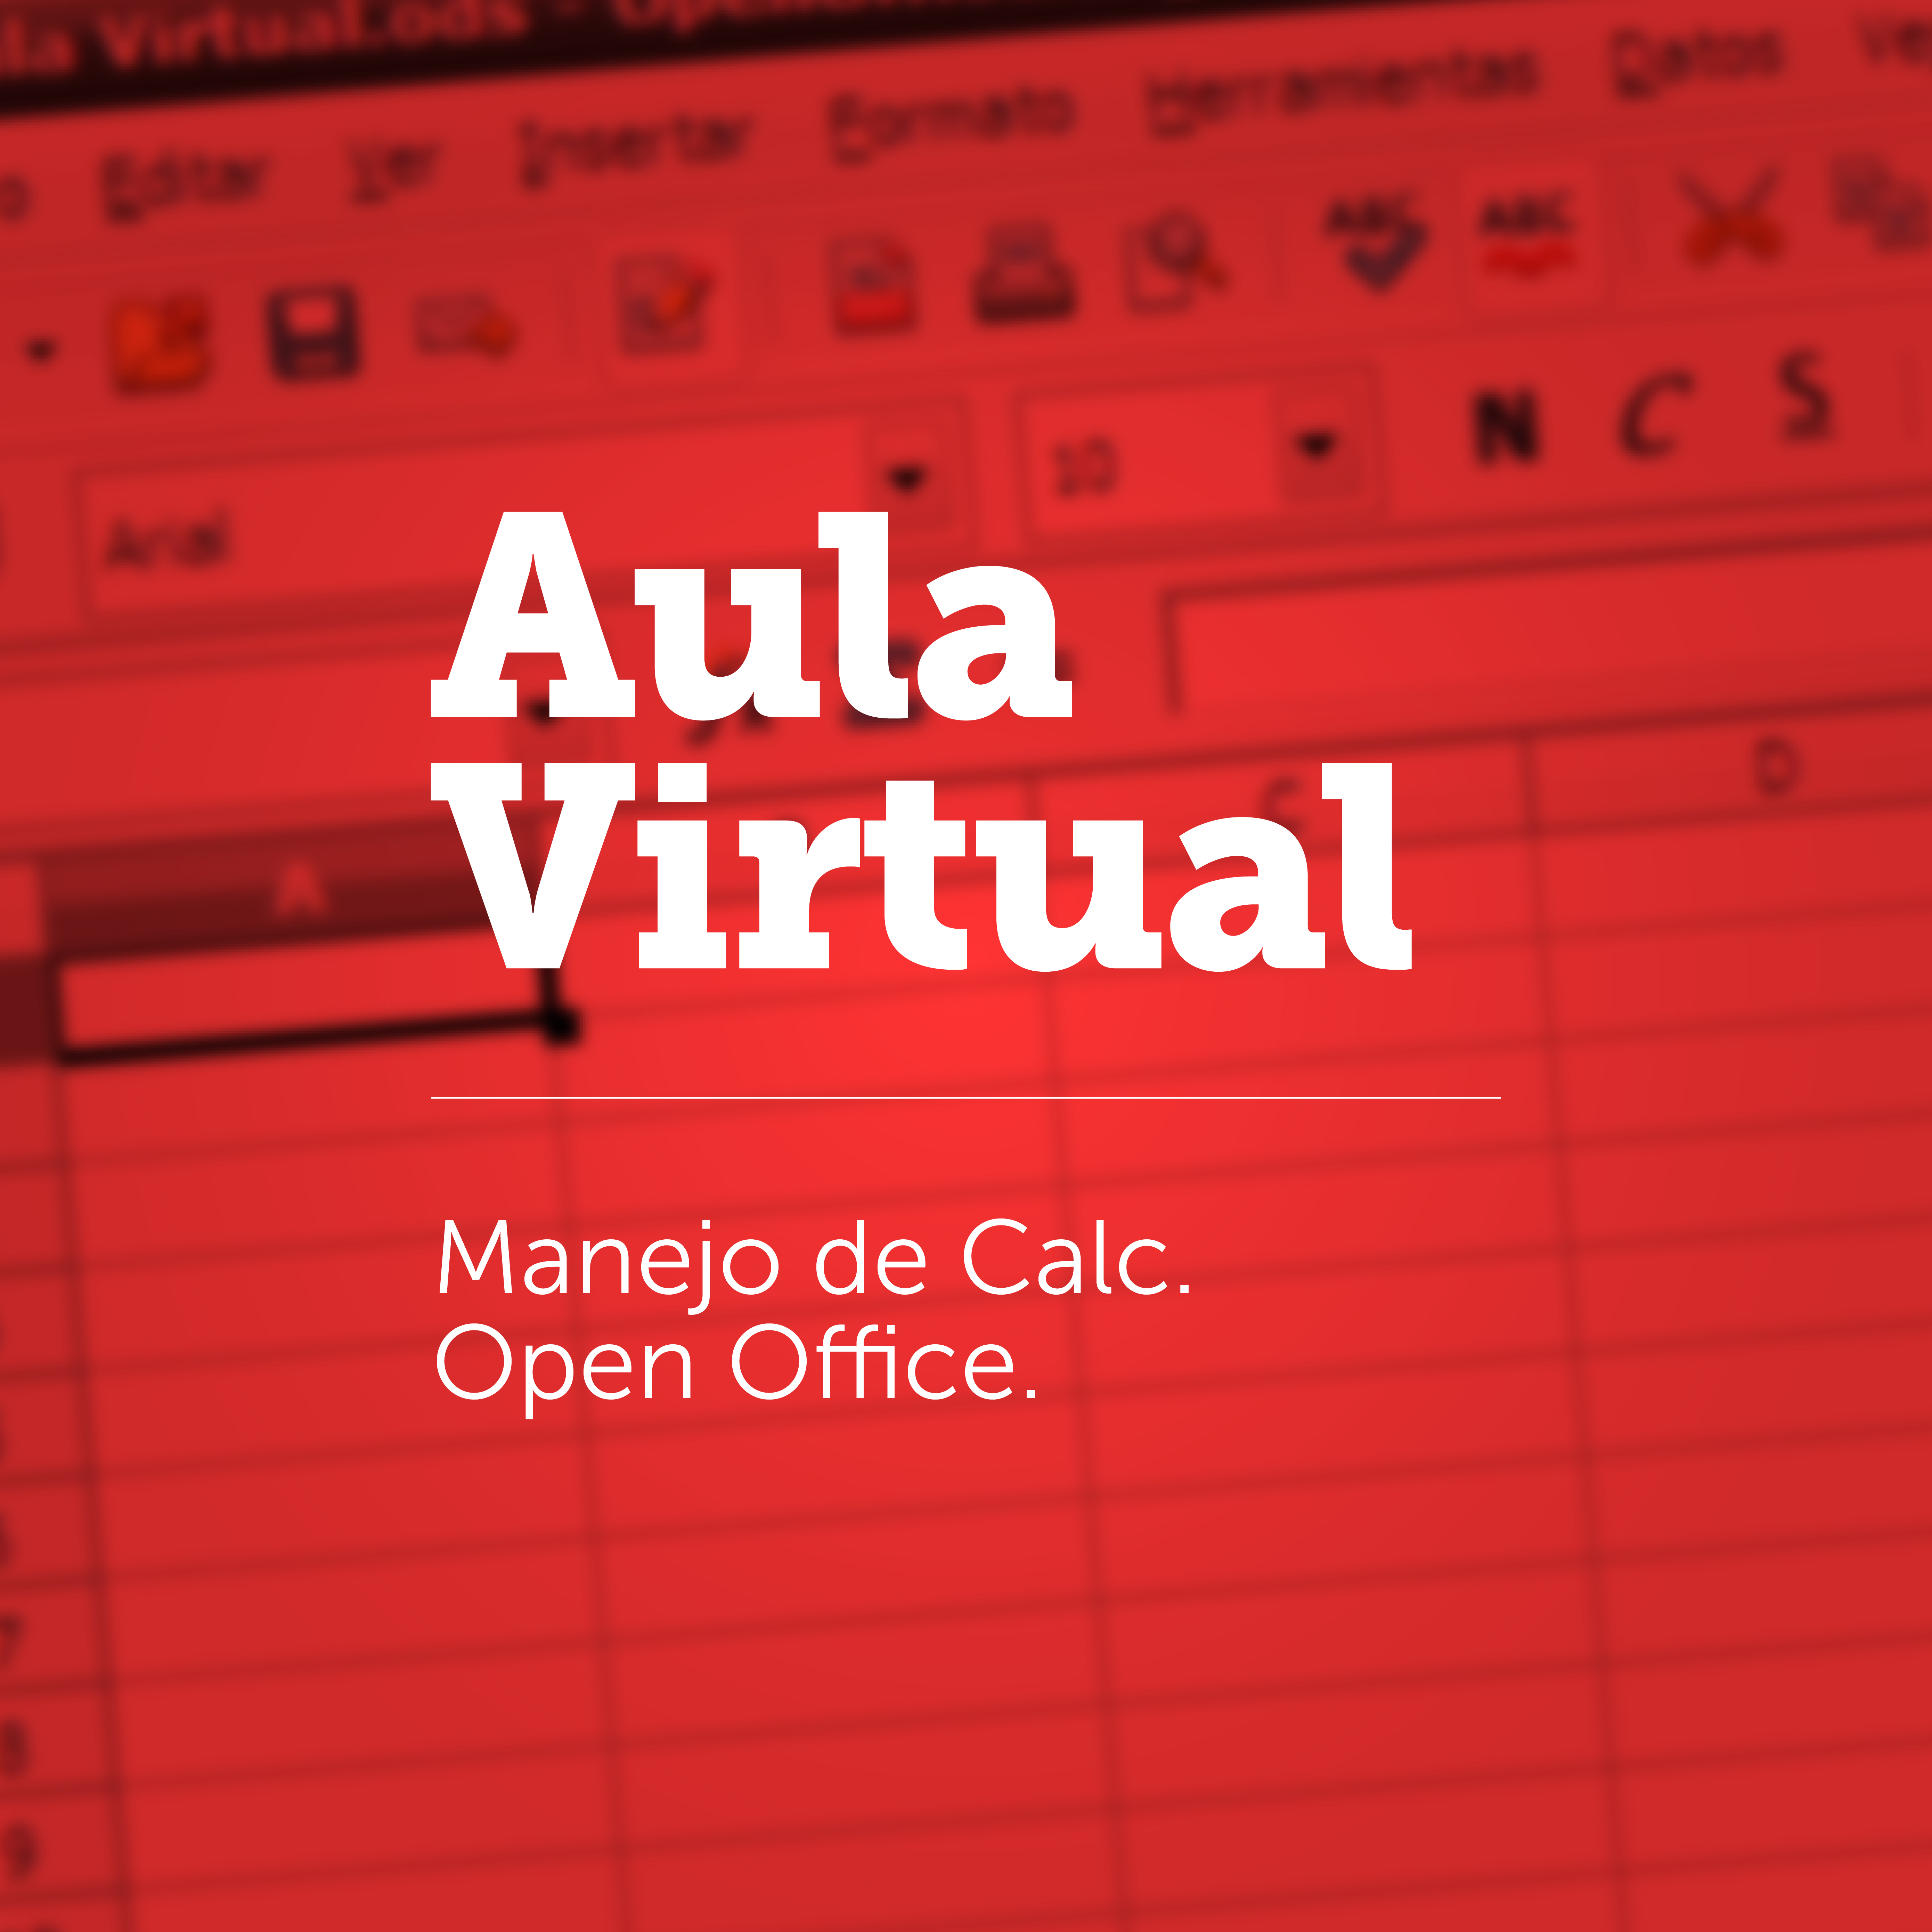 Manejo de CALC: Open Office